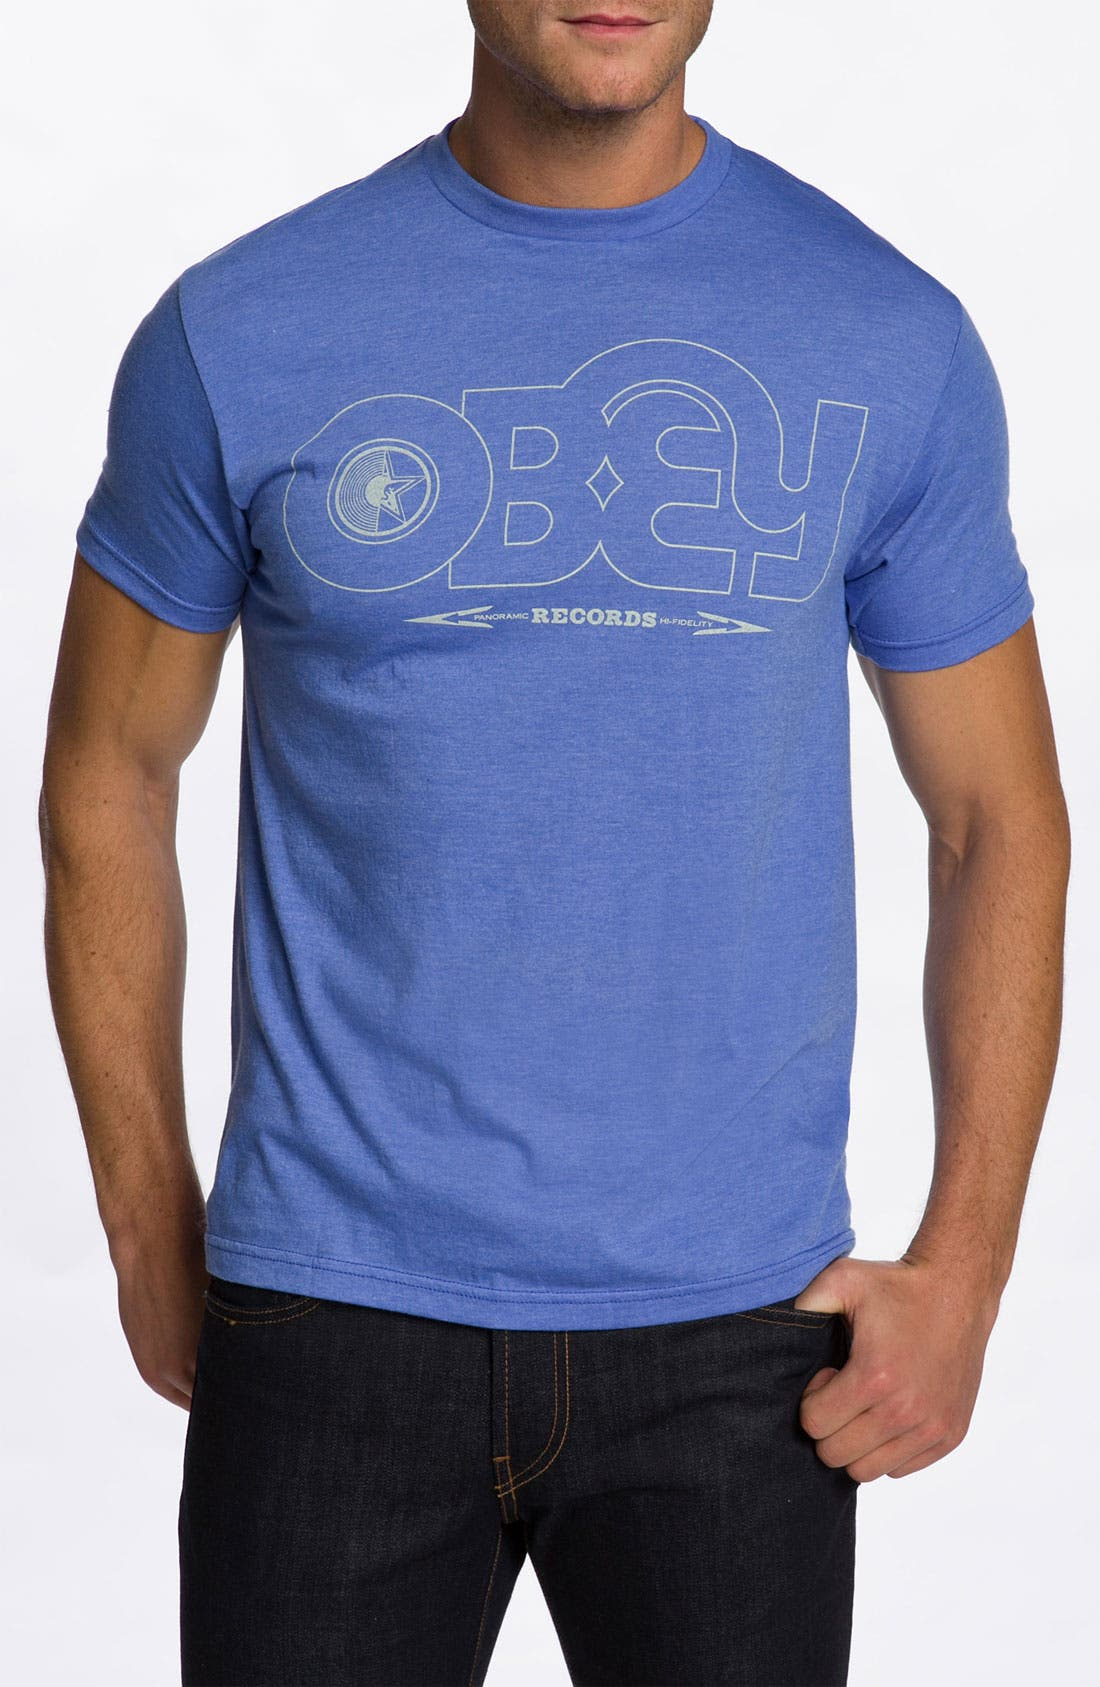 Alternate Image 1 Selected - Obey 'Voices Records' T-Shirt